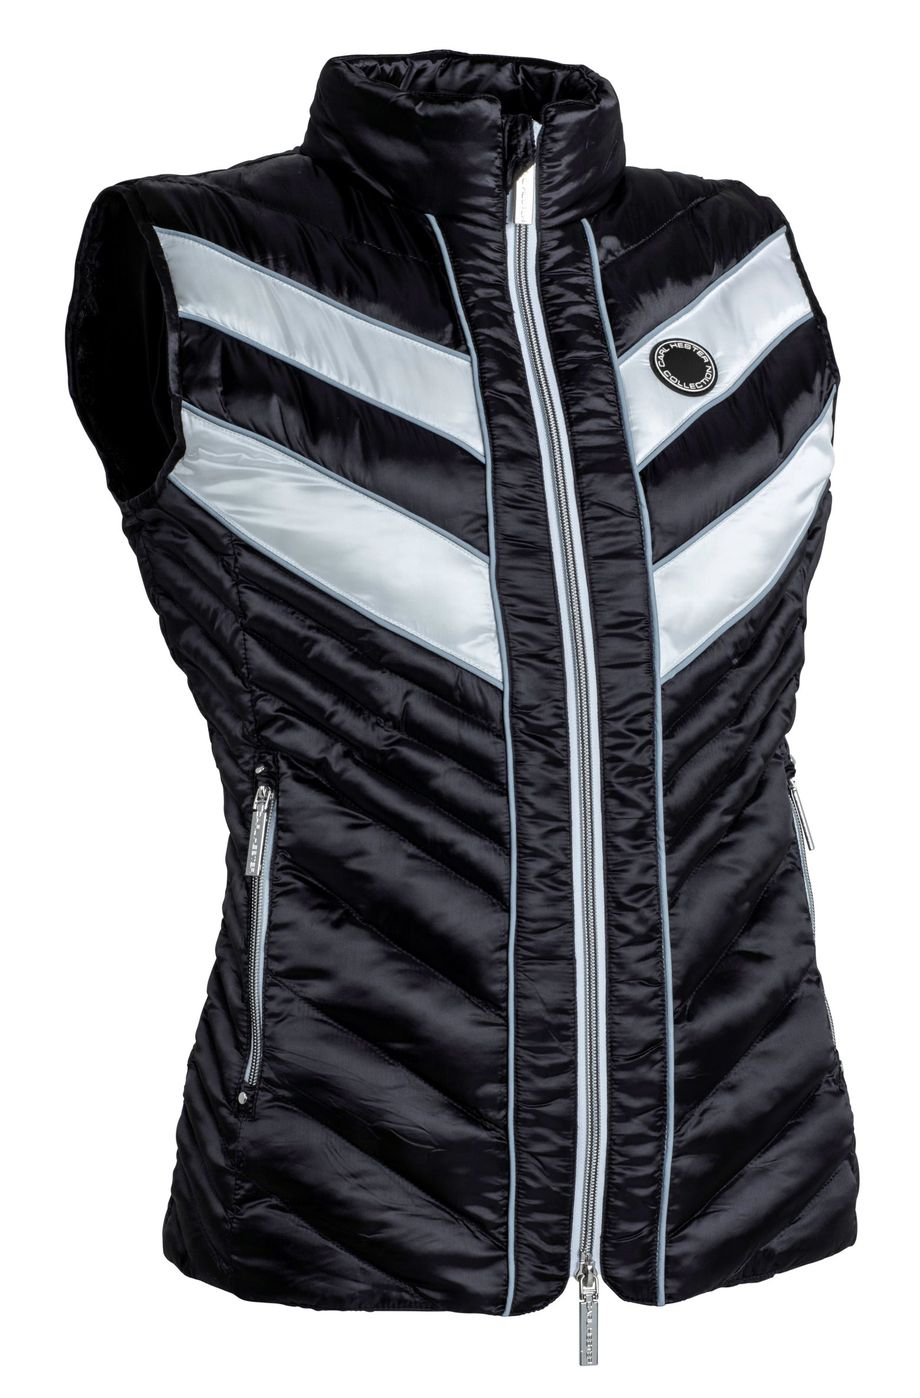 CARL HESTER COLLECTION AZAR QUILTED GILET -BLACK / WHITE - Divine Equestrian